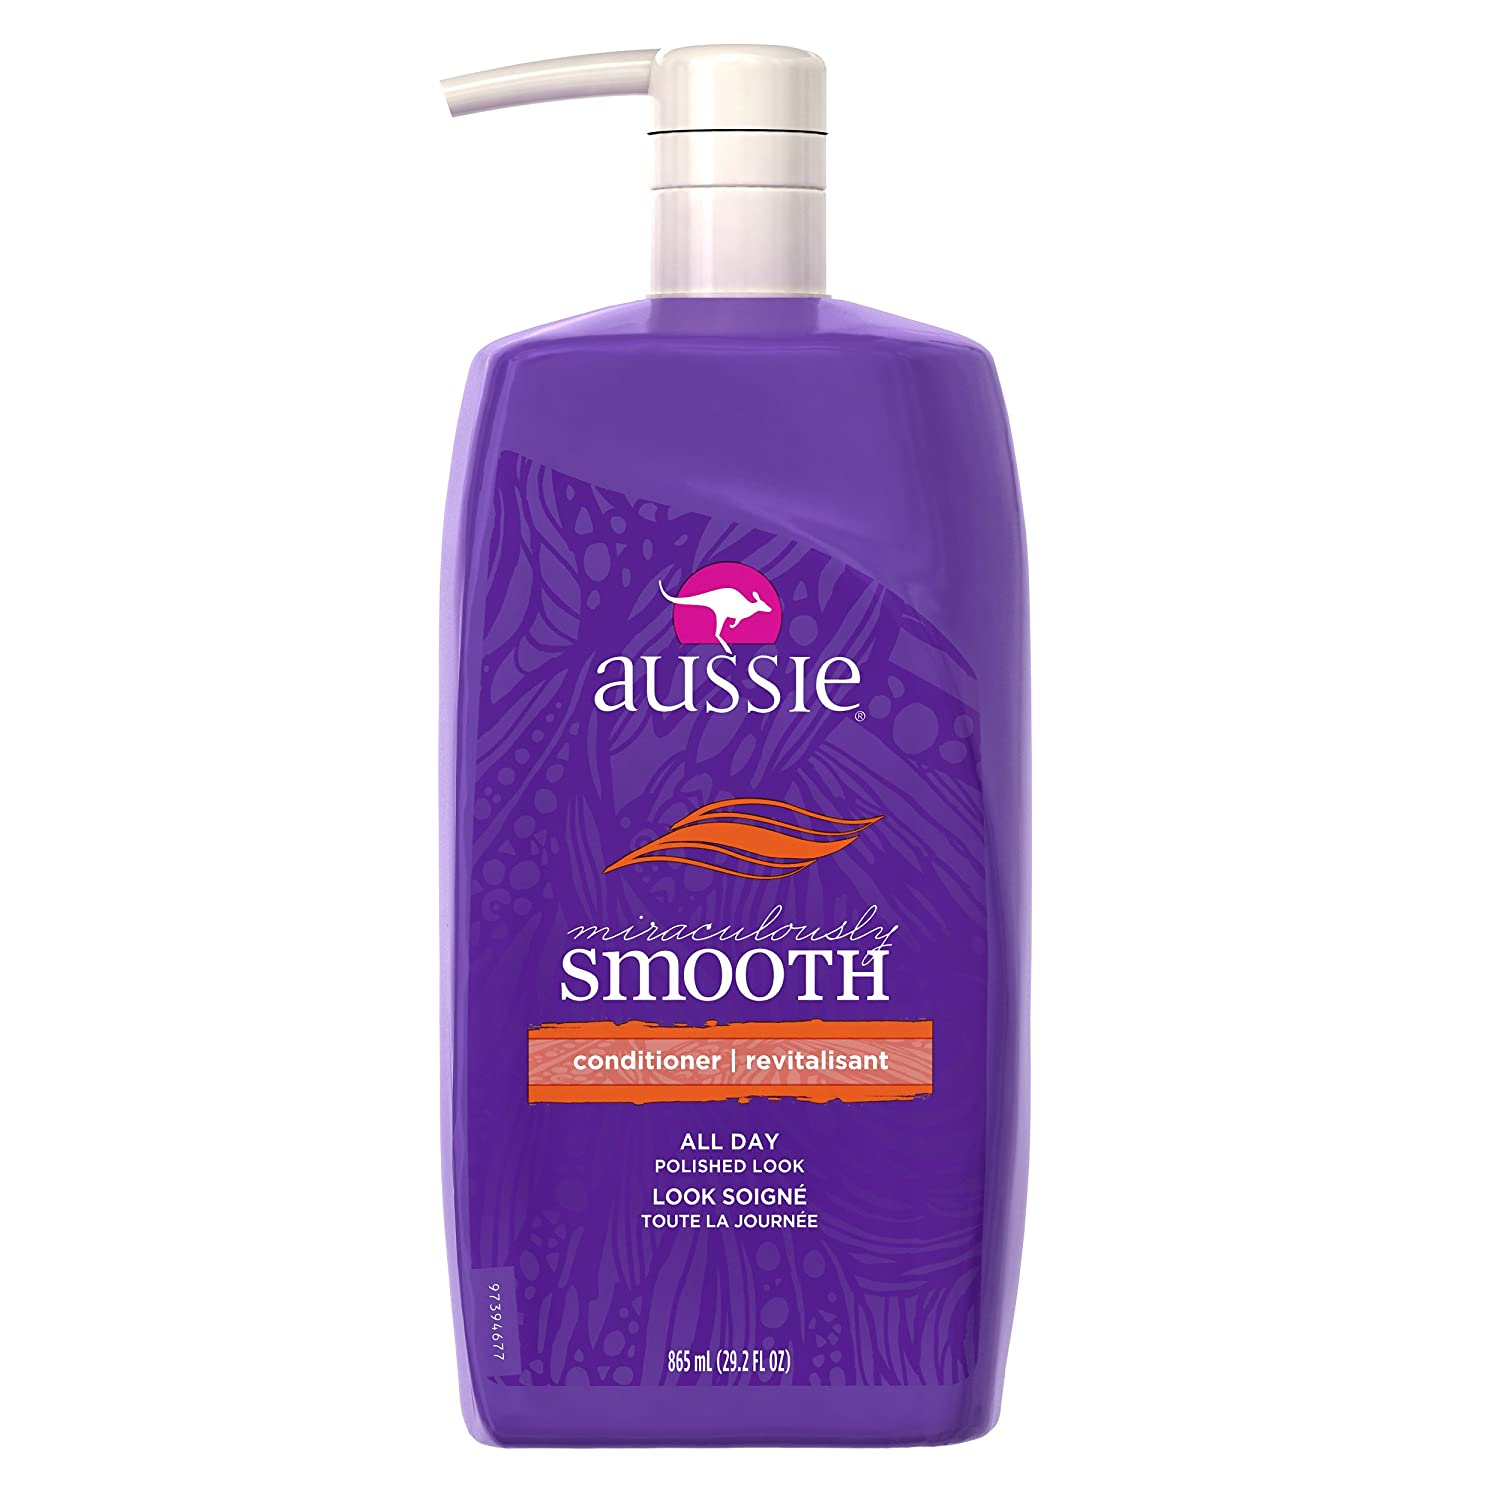 Aussie Miraculously Smooth Conditioner, 29.2 Fluid Ounce